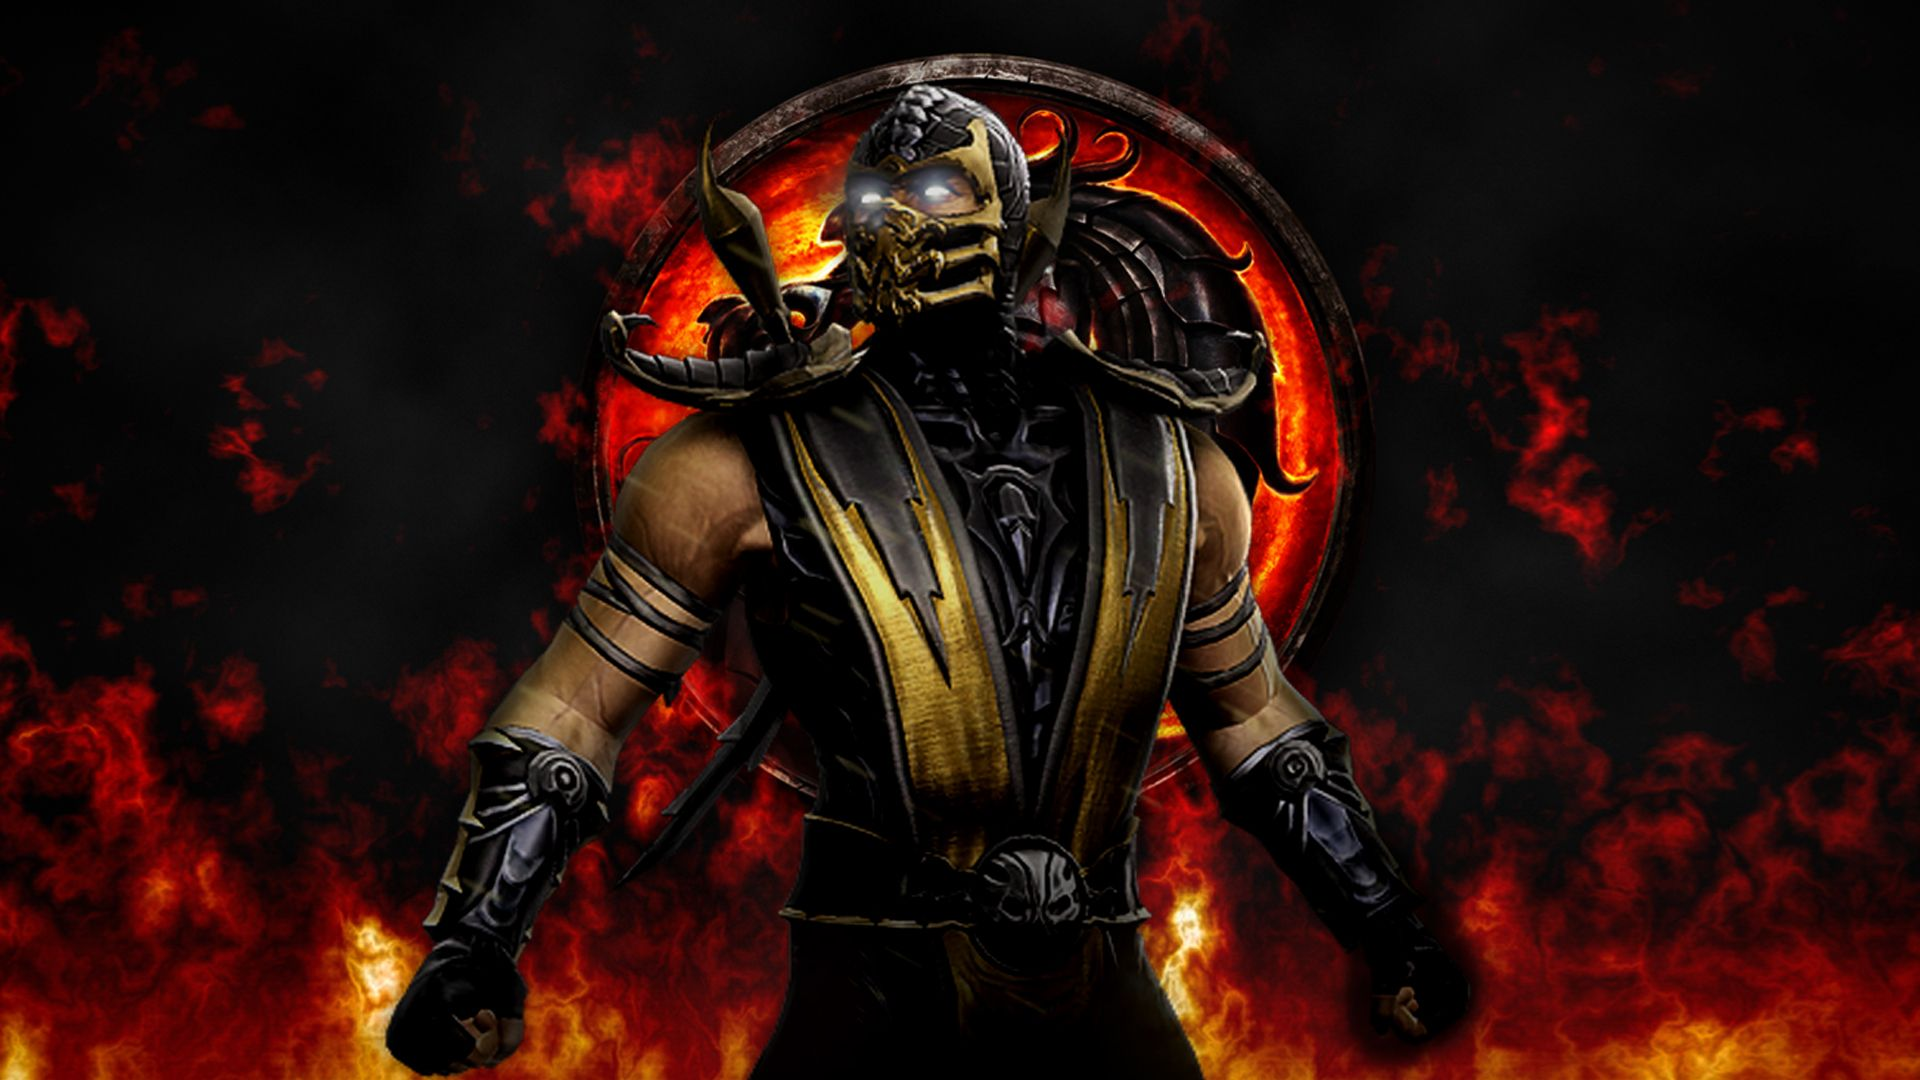 Mortal Kombat X Wallpaper Hd Posted By Christopher Sellers